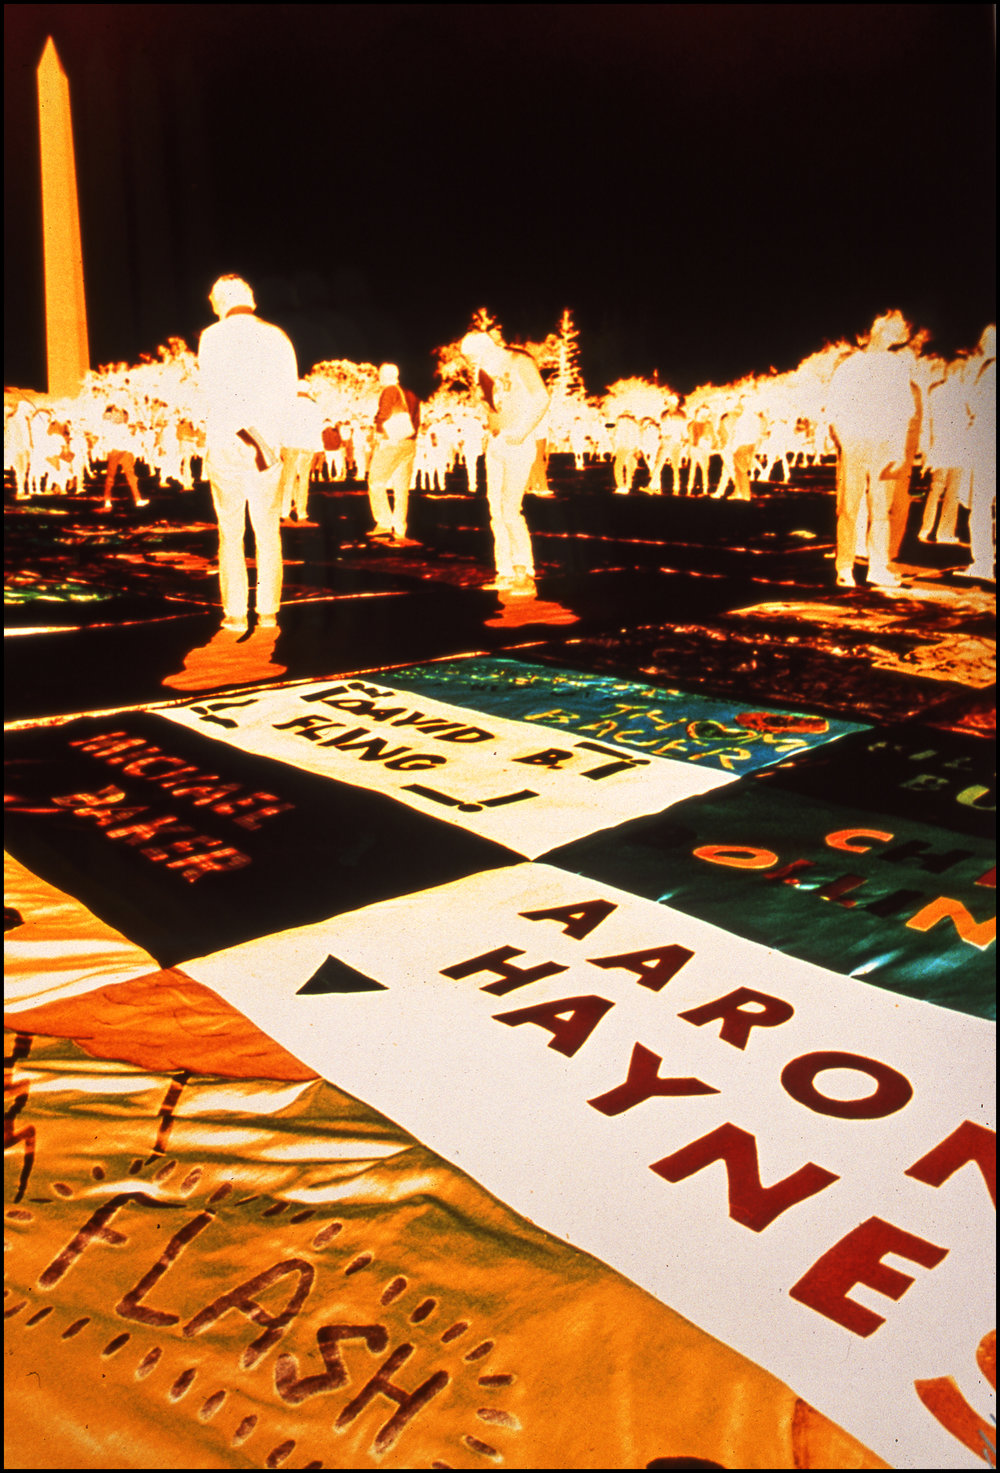 AIDS Quilt, Washington DC, 1987